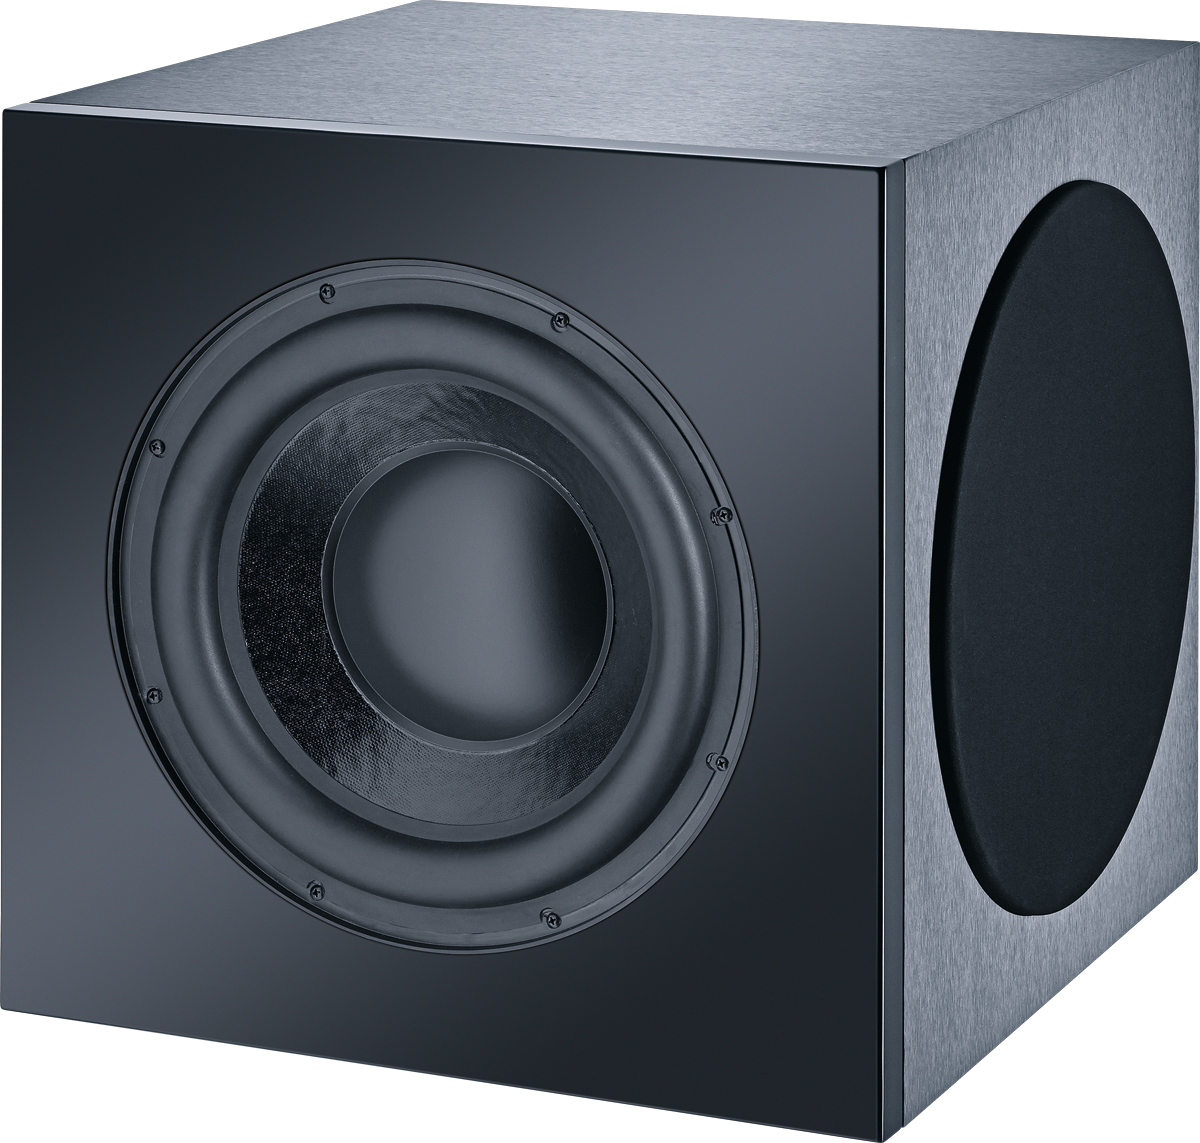 magnat cinema ultra sub 300 thx subwoofer attivo nero atracit. Black Bedroom Furniture Sets. Home Design Ideas